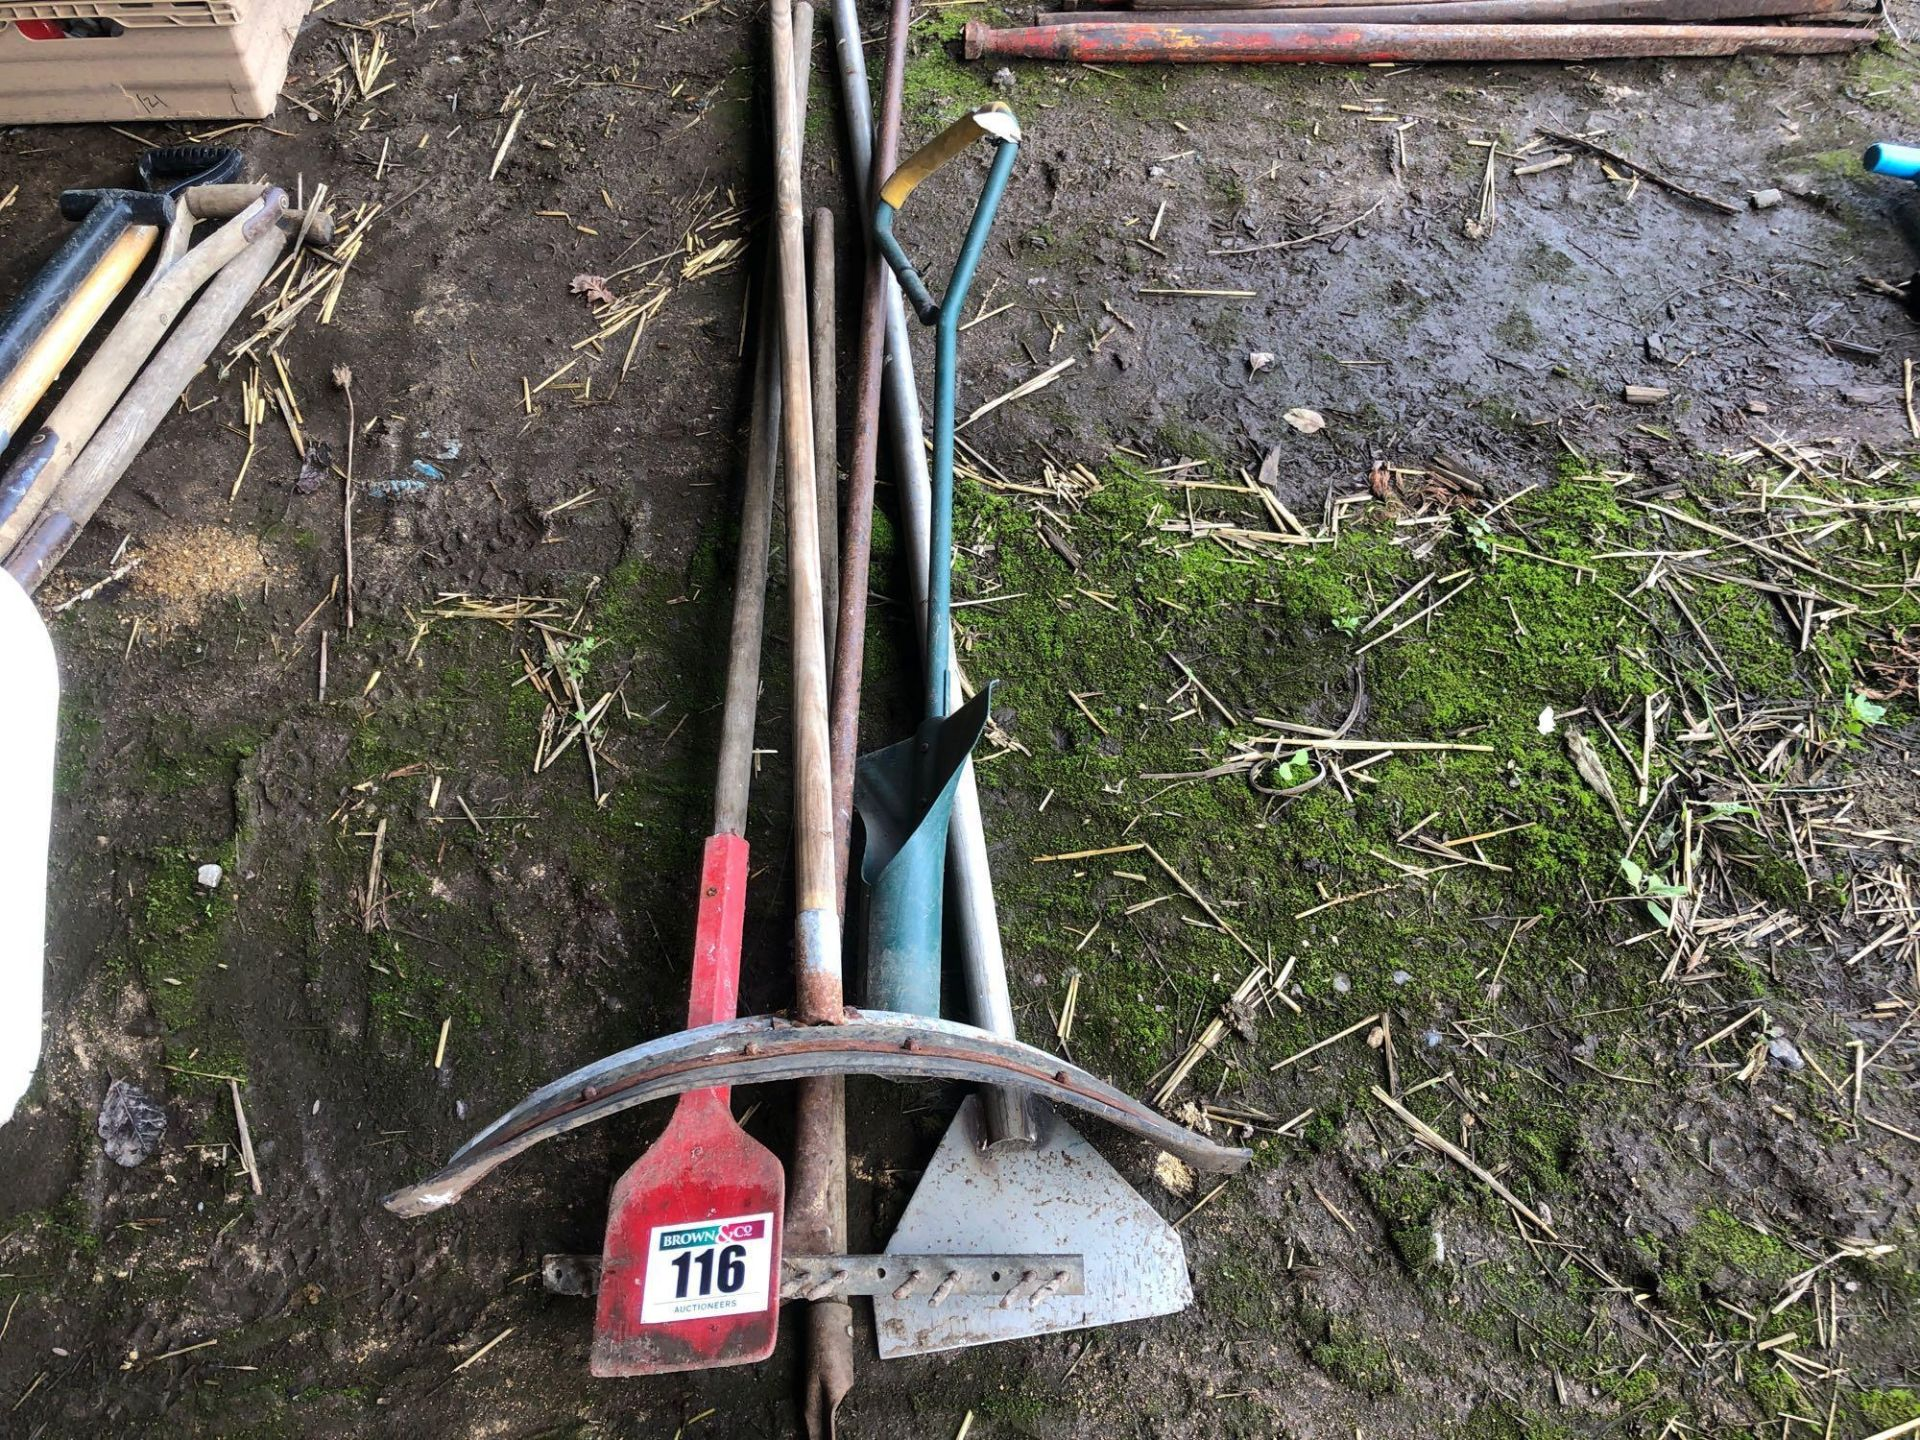 Lot 116 - Quantity assorted hand tools and spares